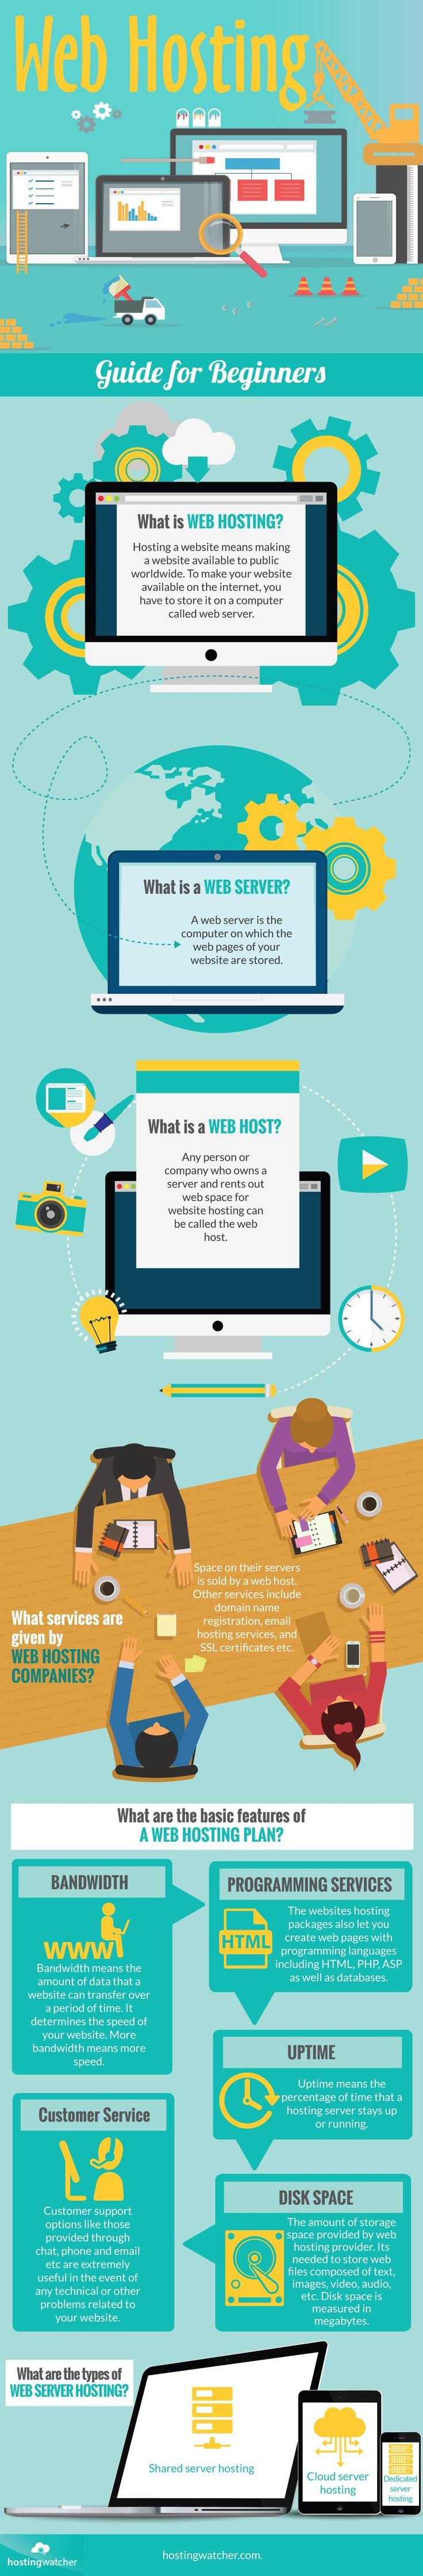 Beginners #Guide to #Website Hosting - Do you fancy an infographic?  There are a lot of them online, but if you want your own please visit http://www.linfografico.com/prezzi/  Online girano molte infografiche, se ne vuoi realizzare una tutta tua visita http://www.linfografico.com/prezzi/